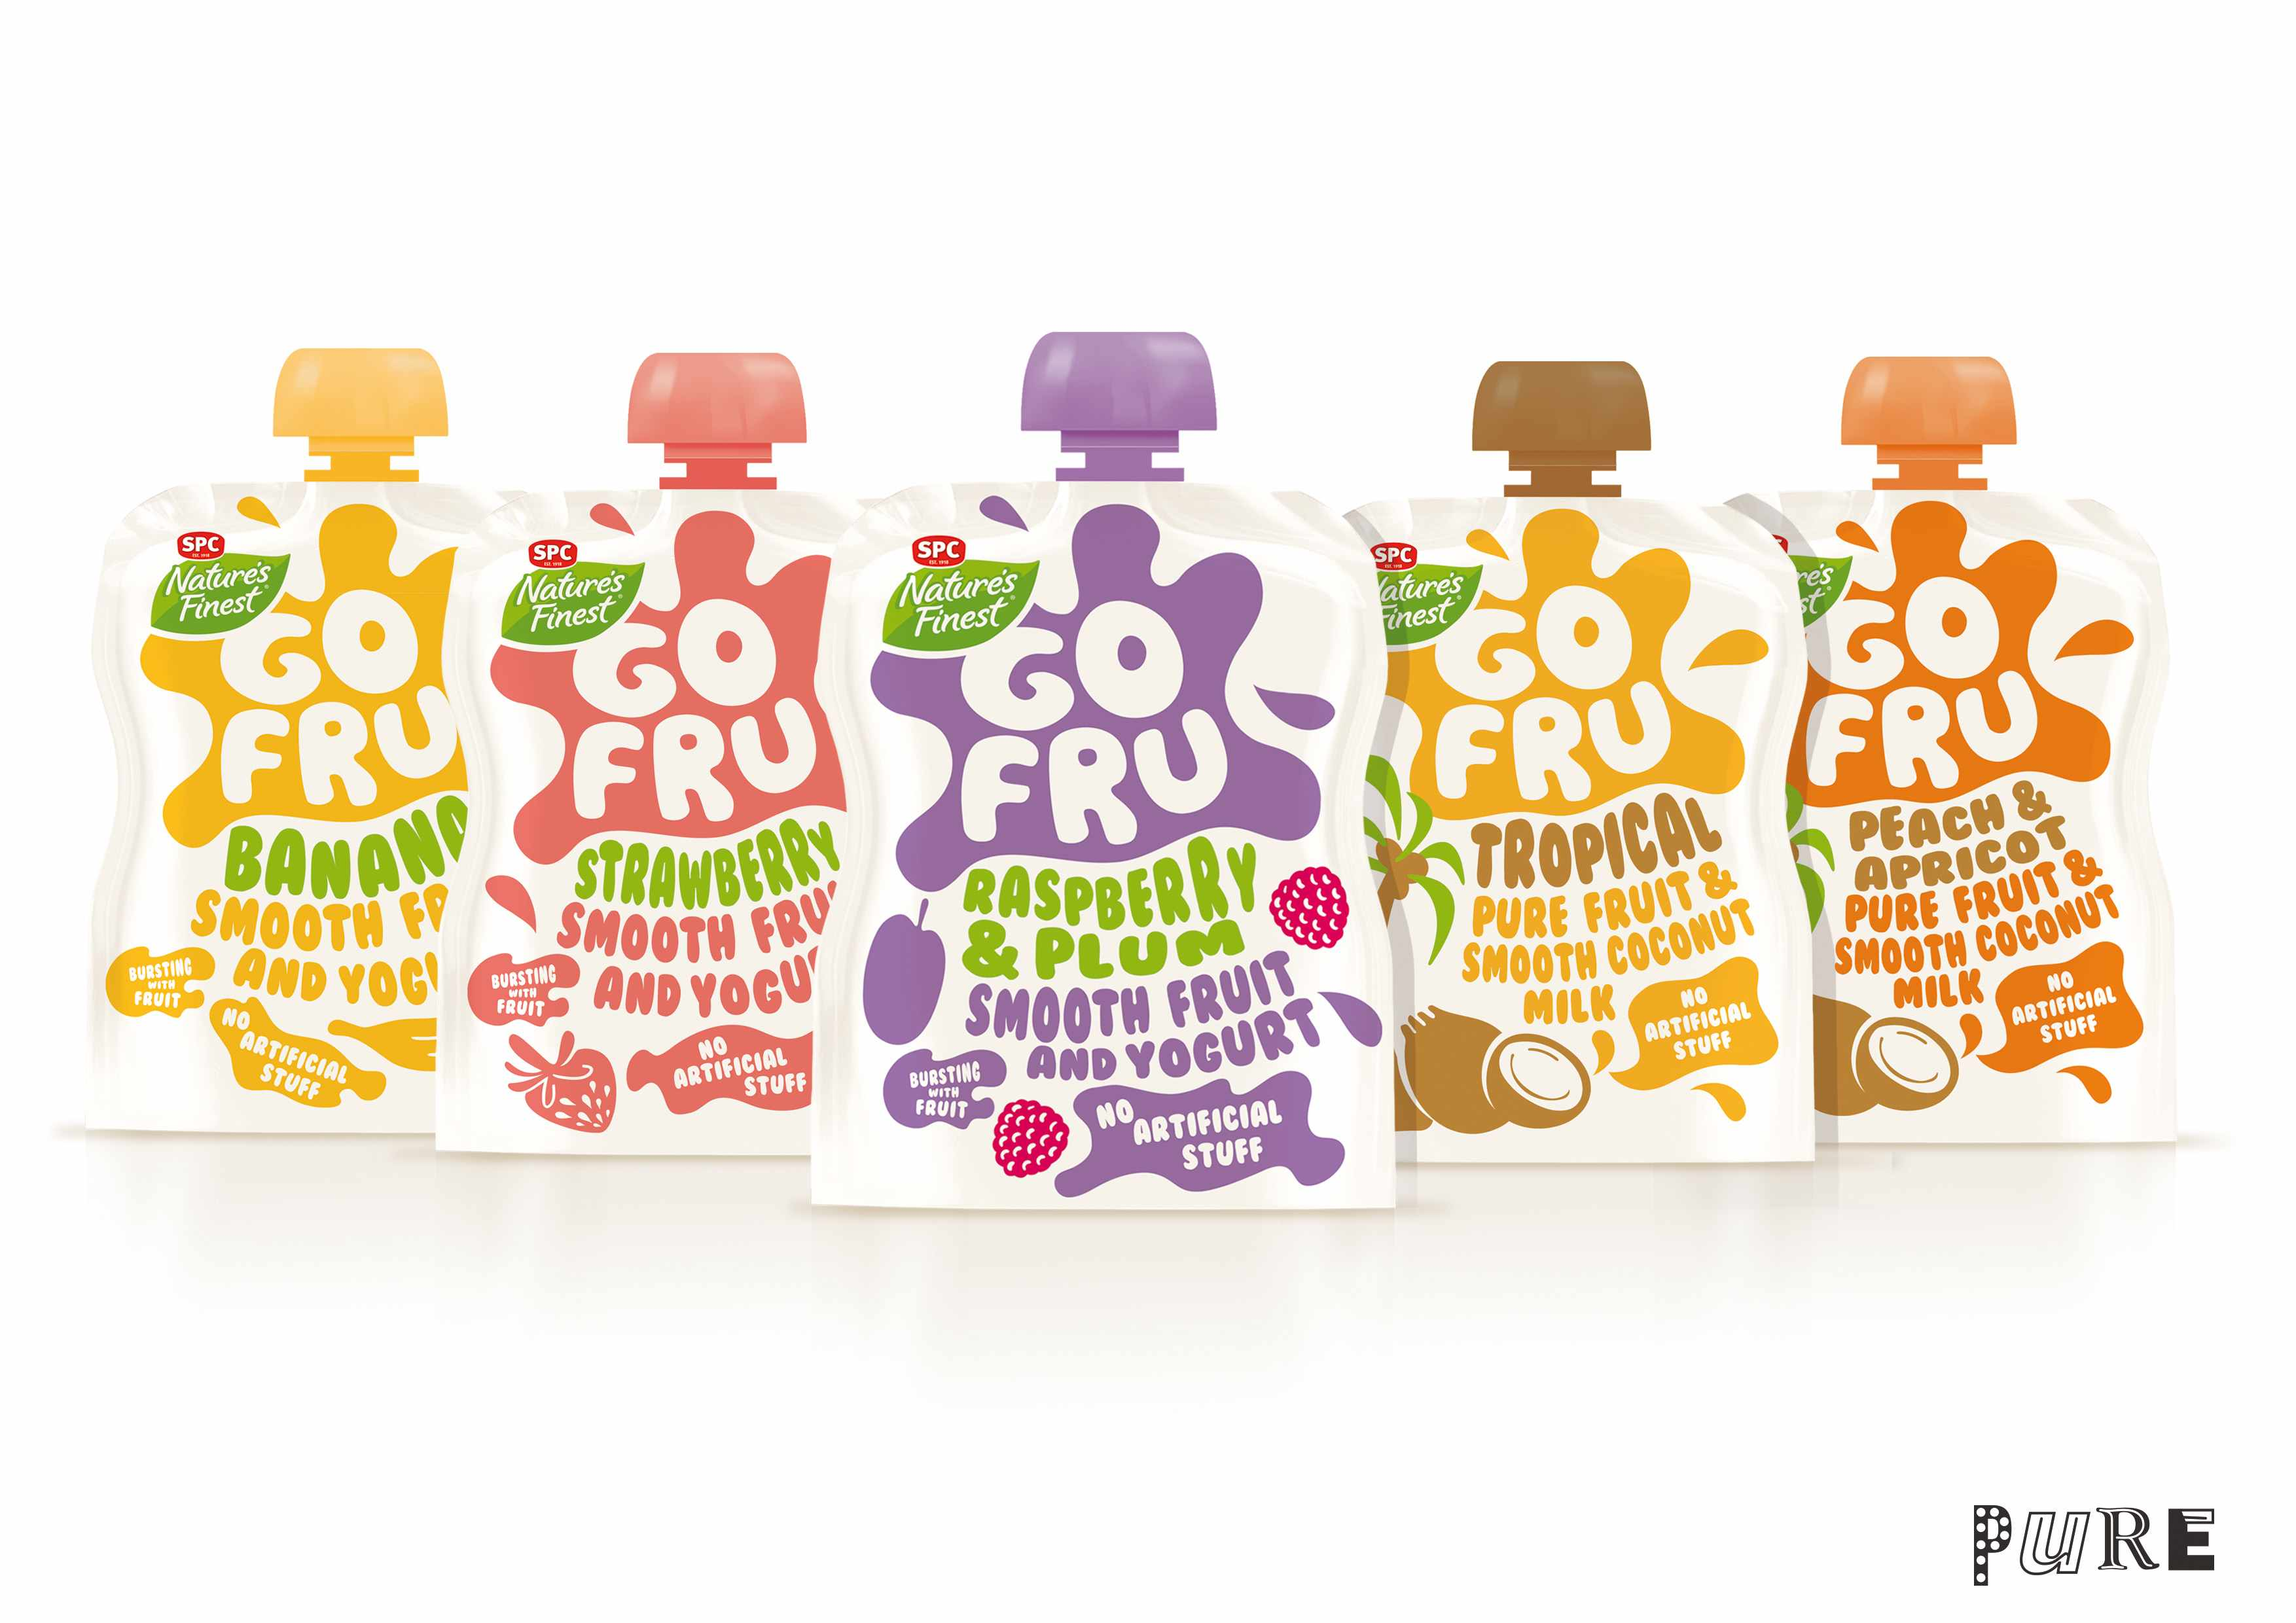 Photo: Go Fru yogurts